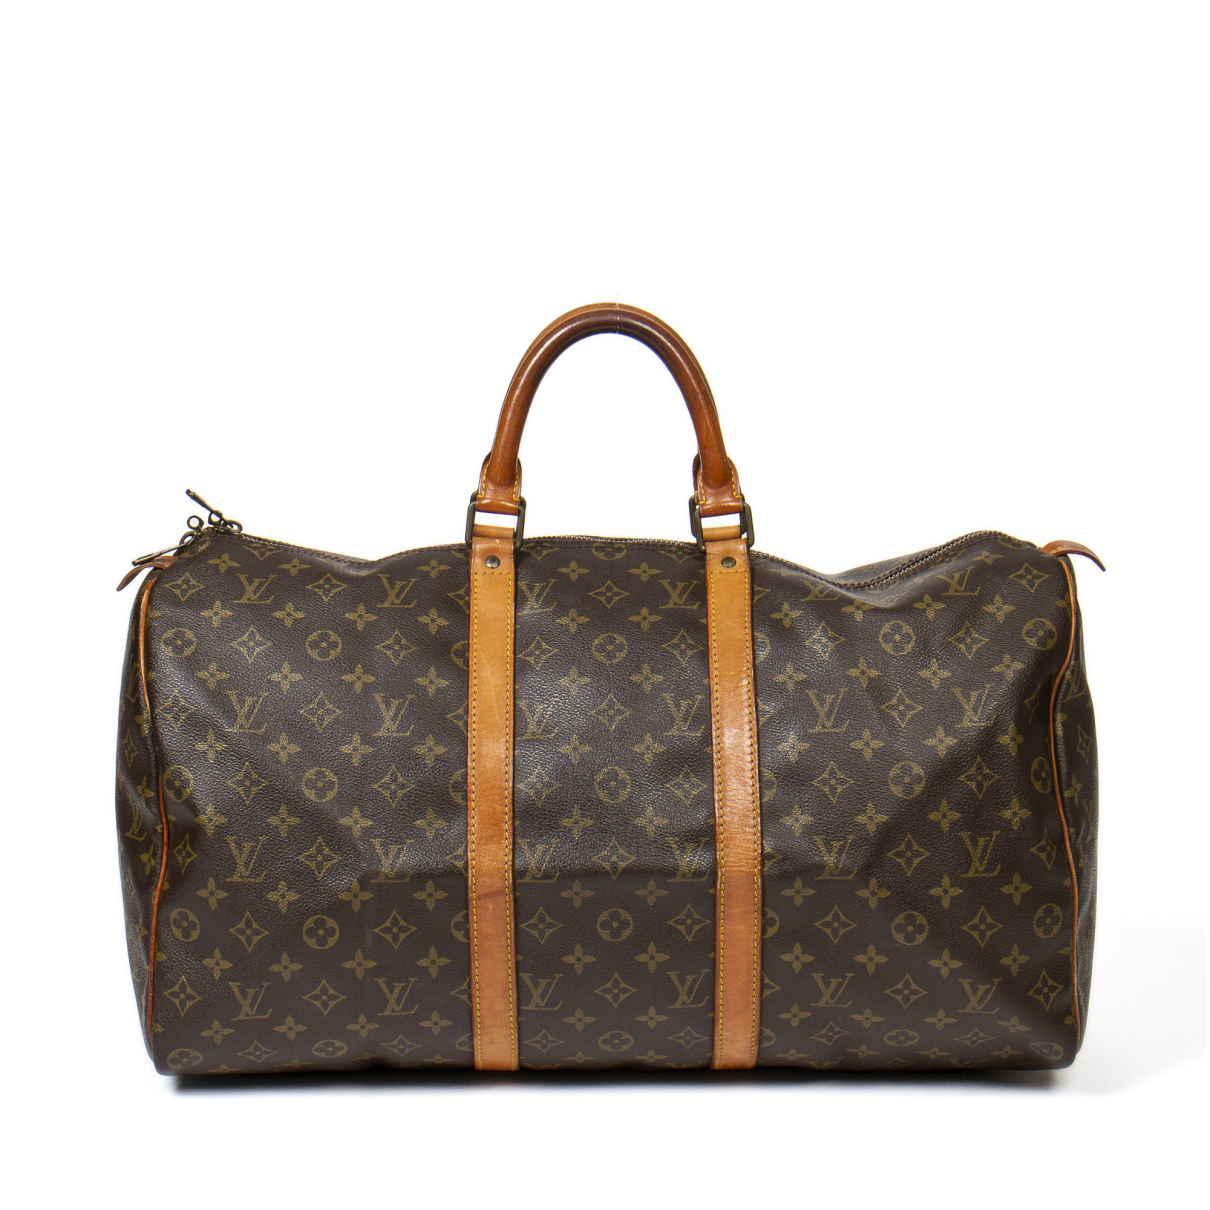 Louis Vuitton \N Brown Leather Travel bag for Women \N